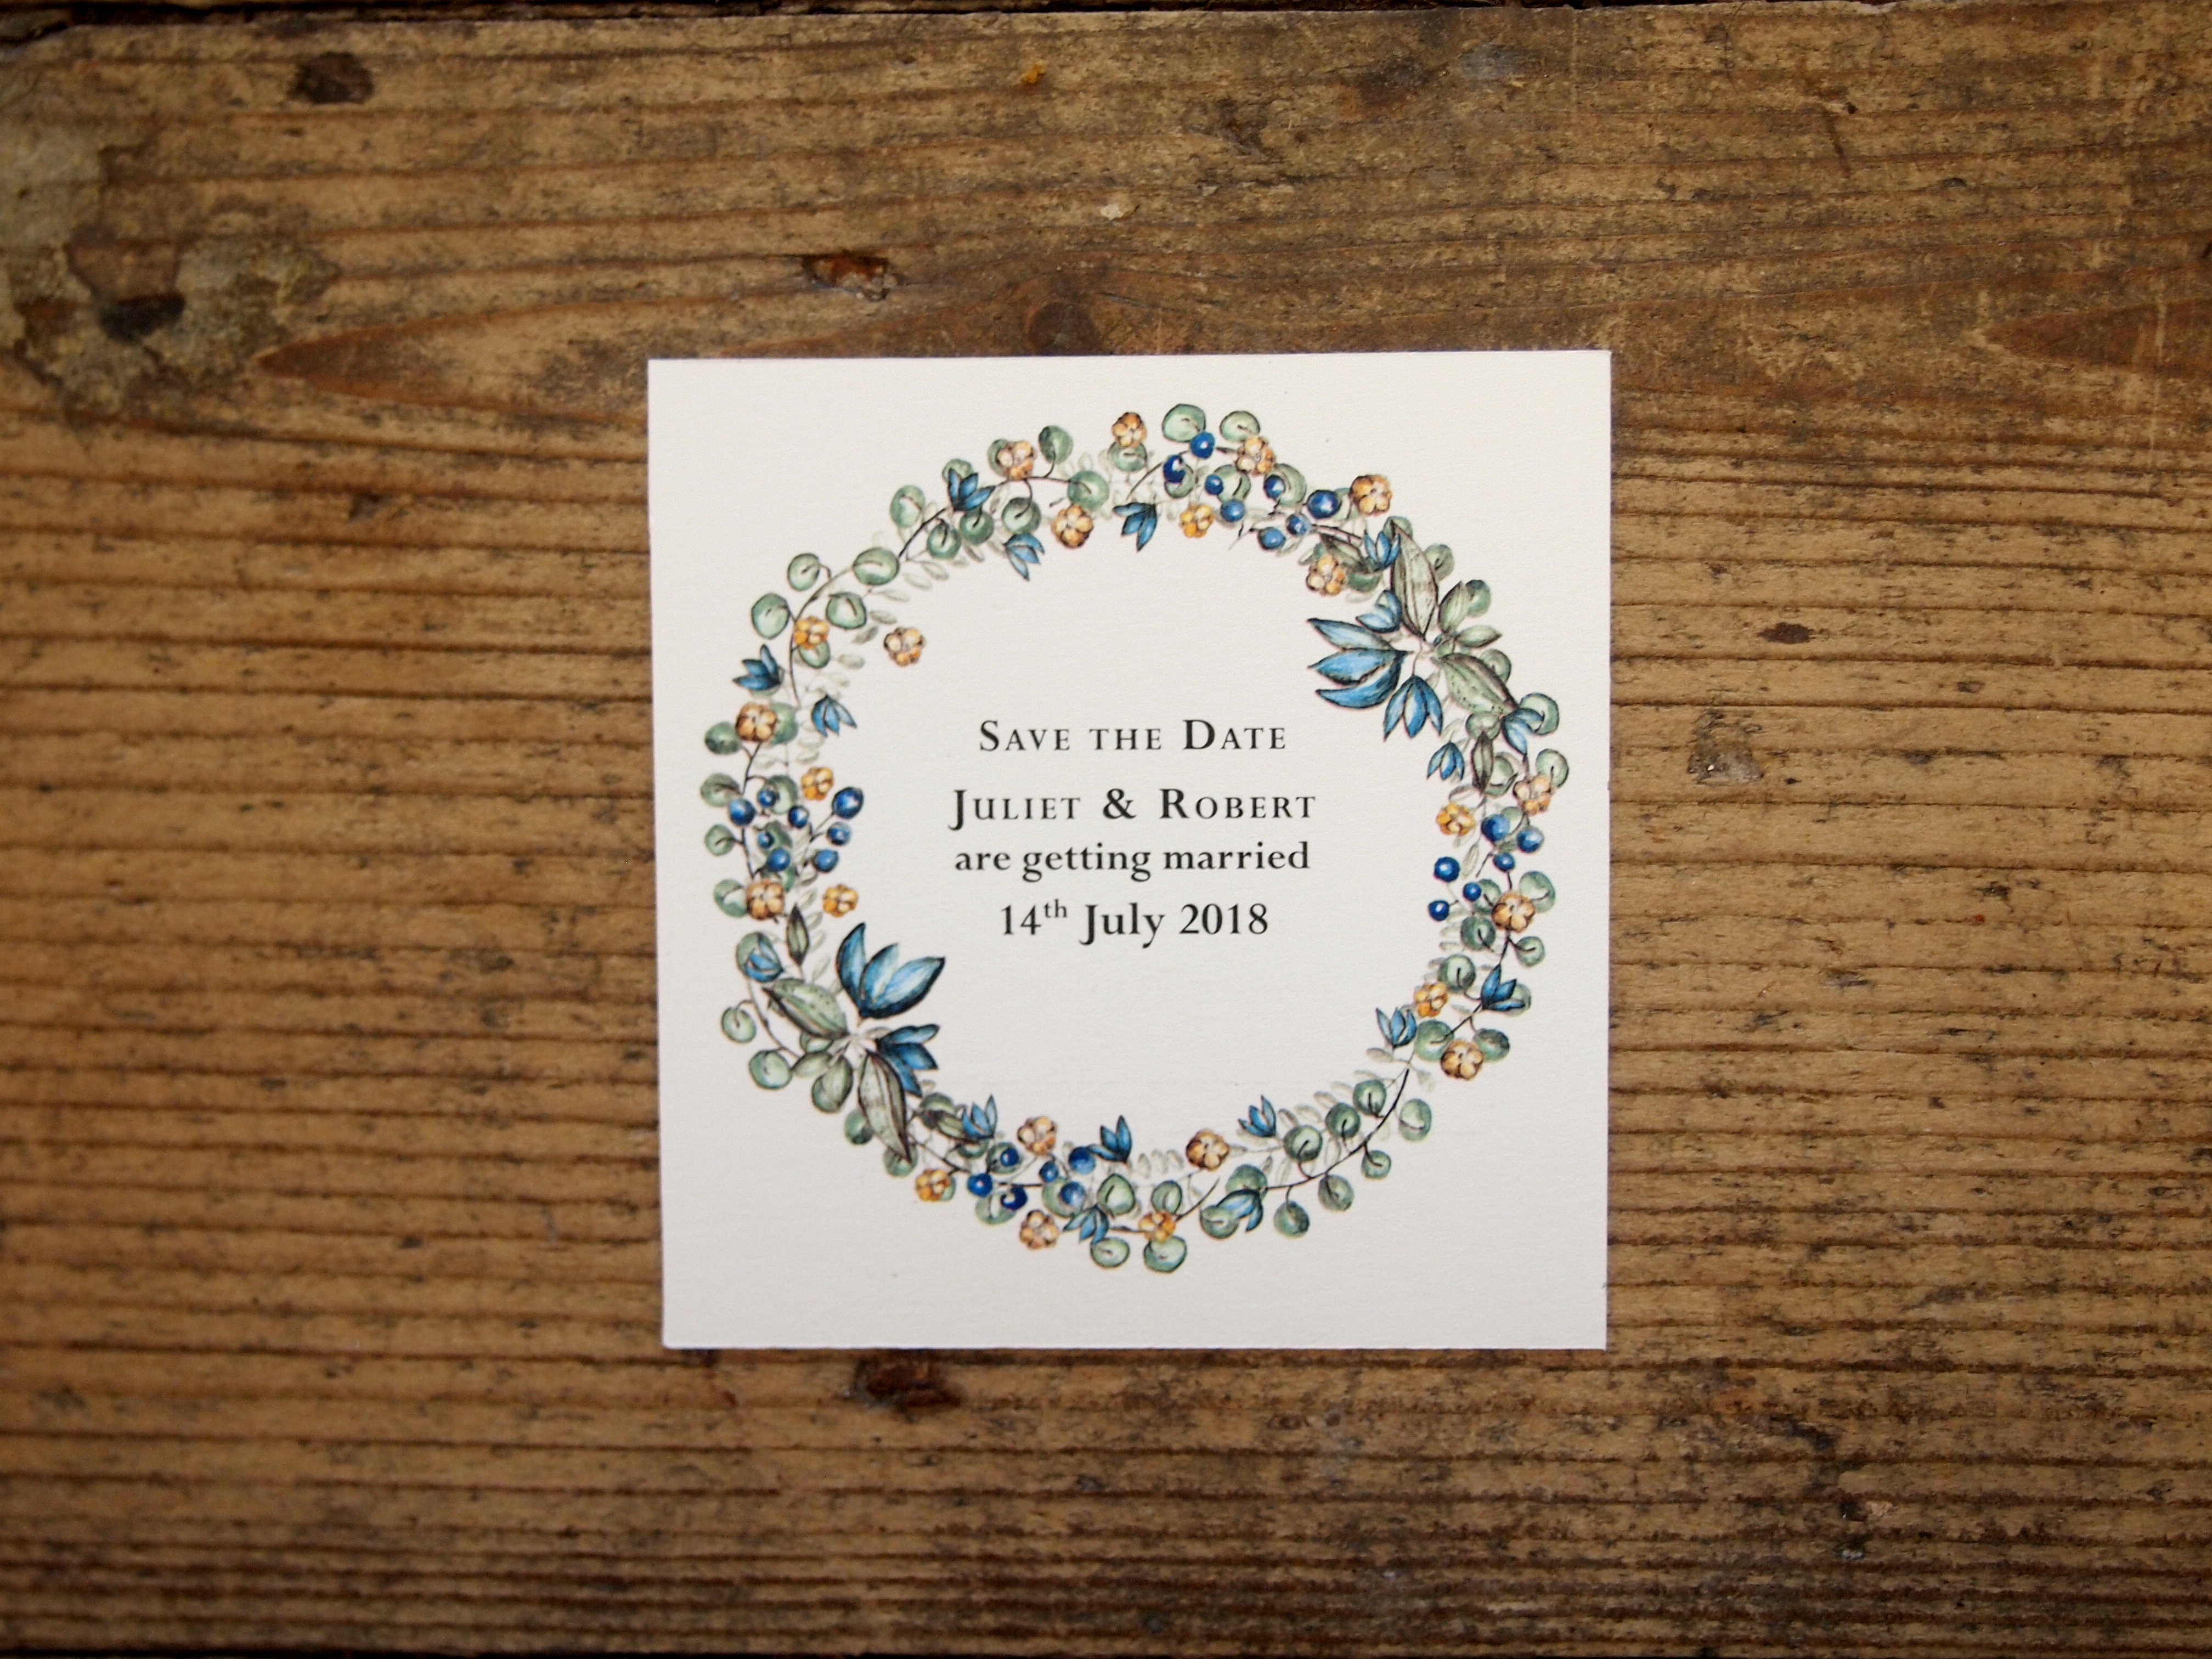 Perpetual Save the Date - White